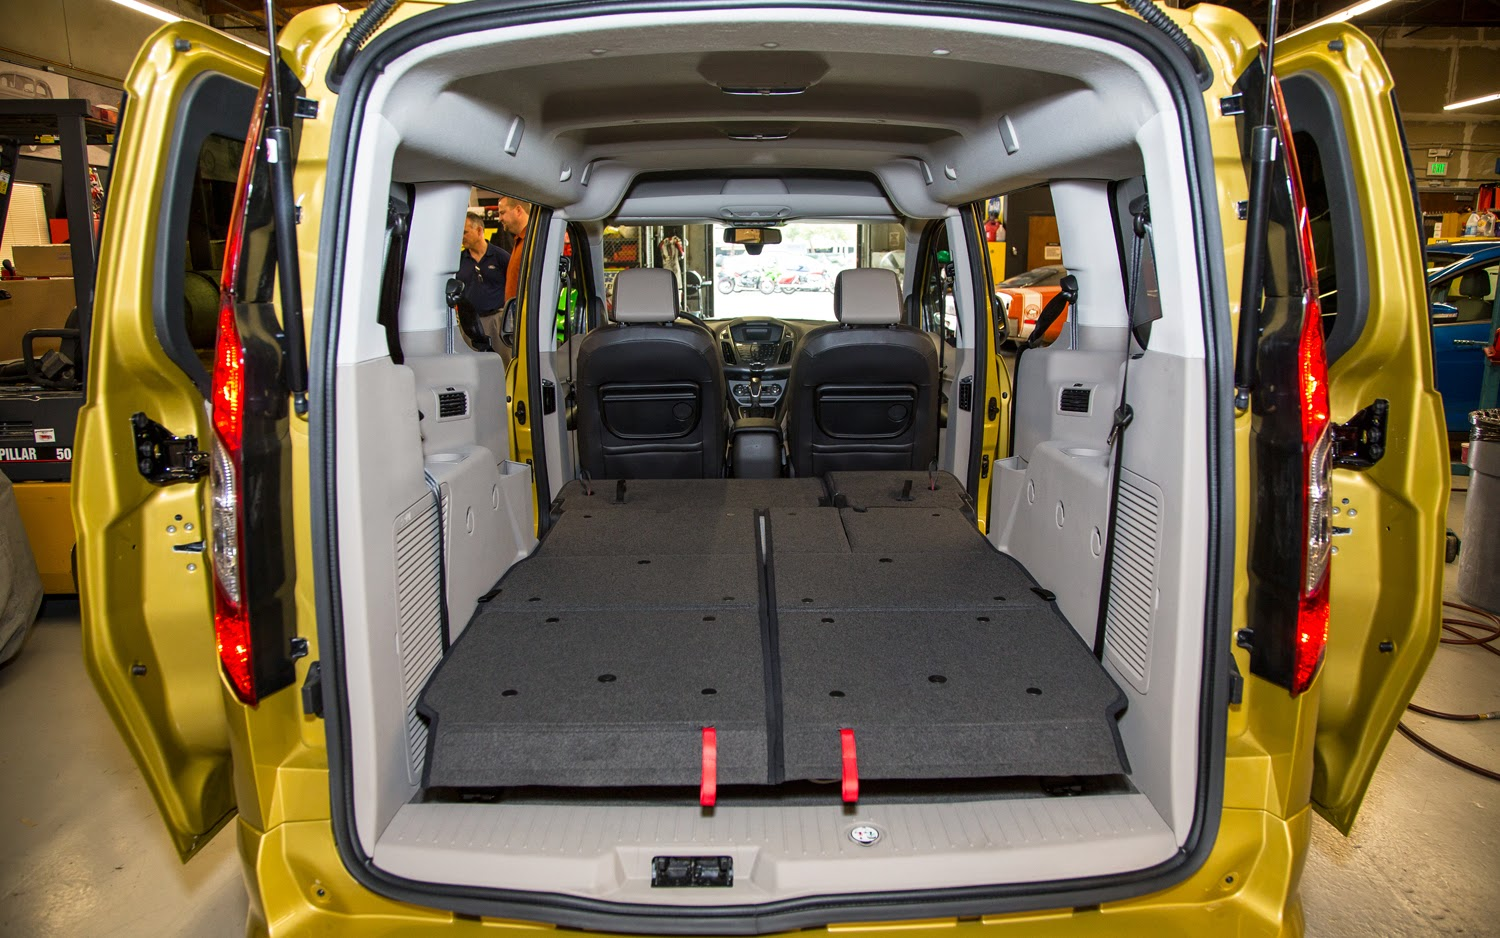 2014 ford transit connect - Ford Transit Connect Interior Camper